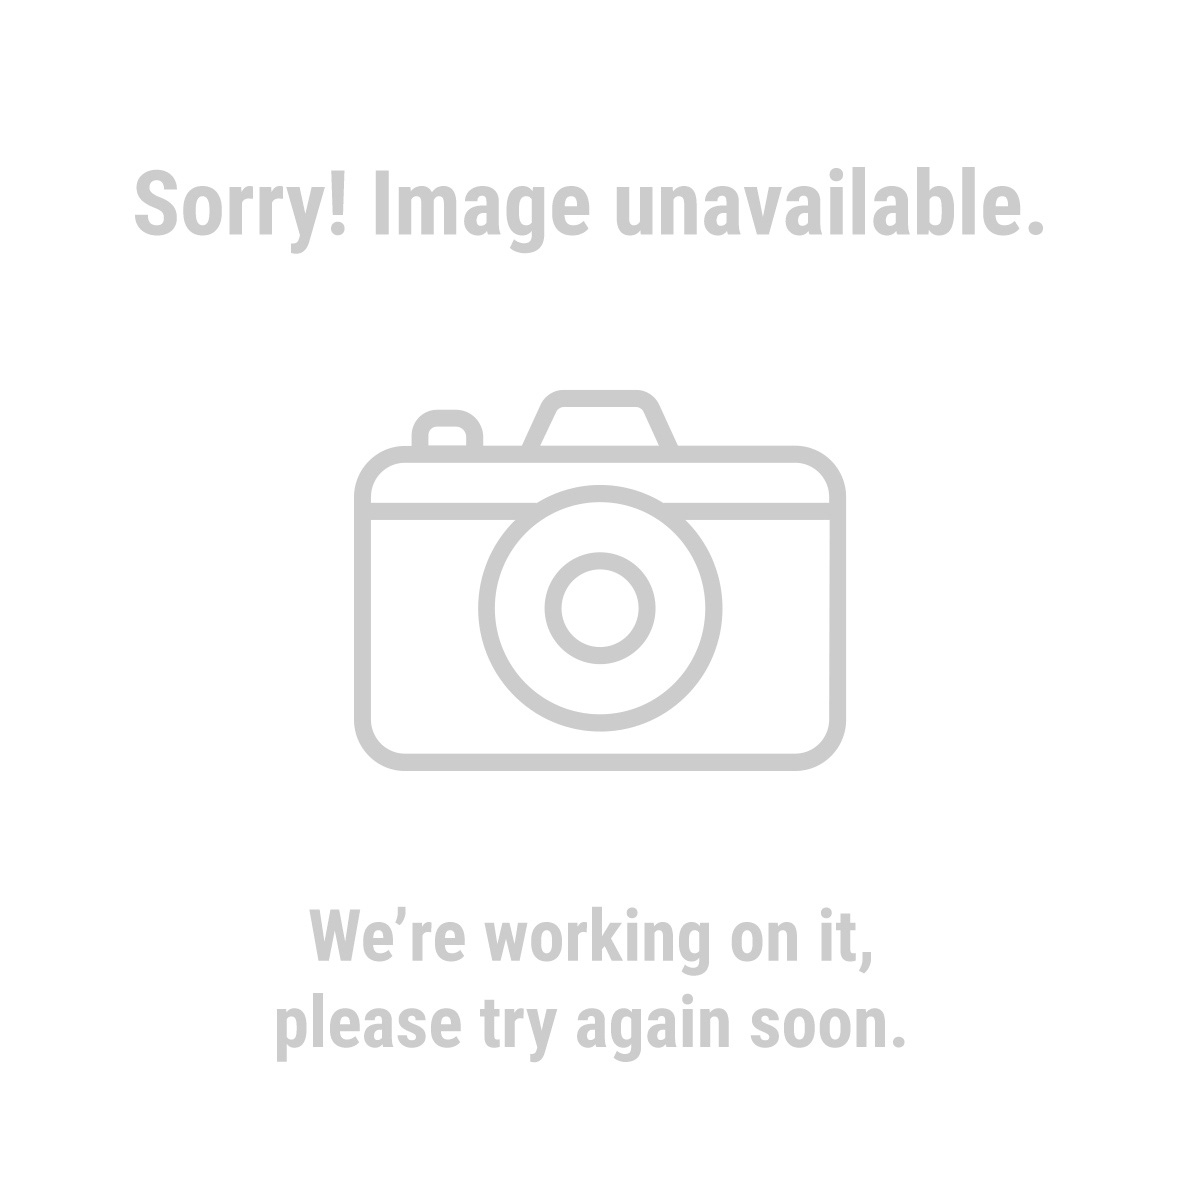 Pittsburgh Automotive 35555 18 Piece Seal Driver Kit